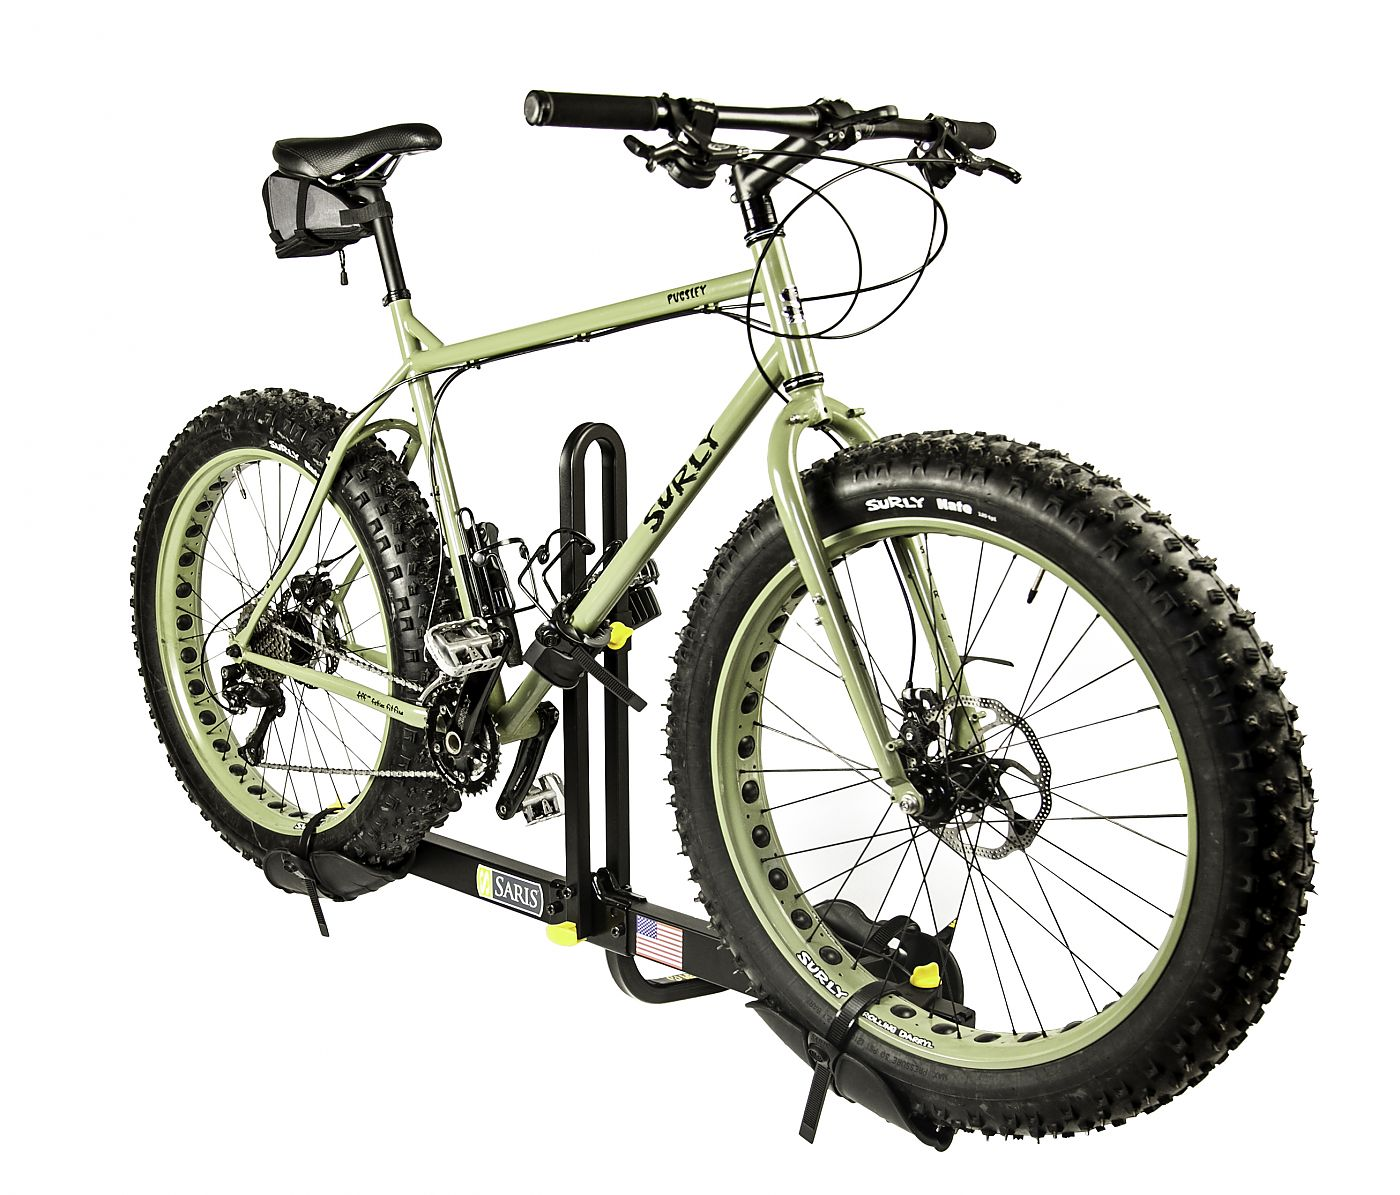 Saris offers fat-tire trays for its Freedom racks ...